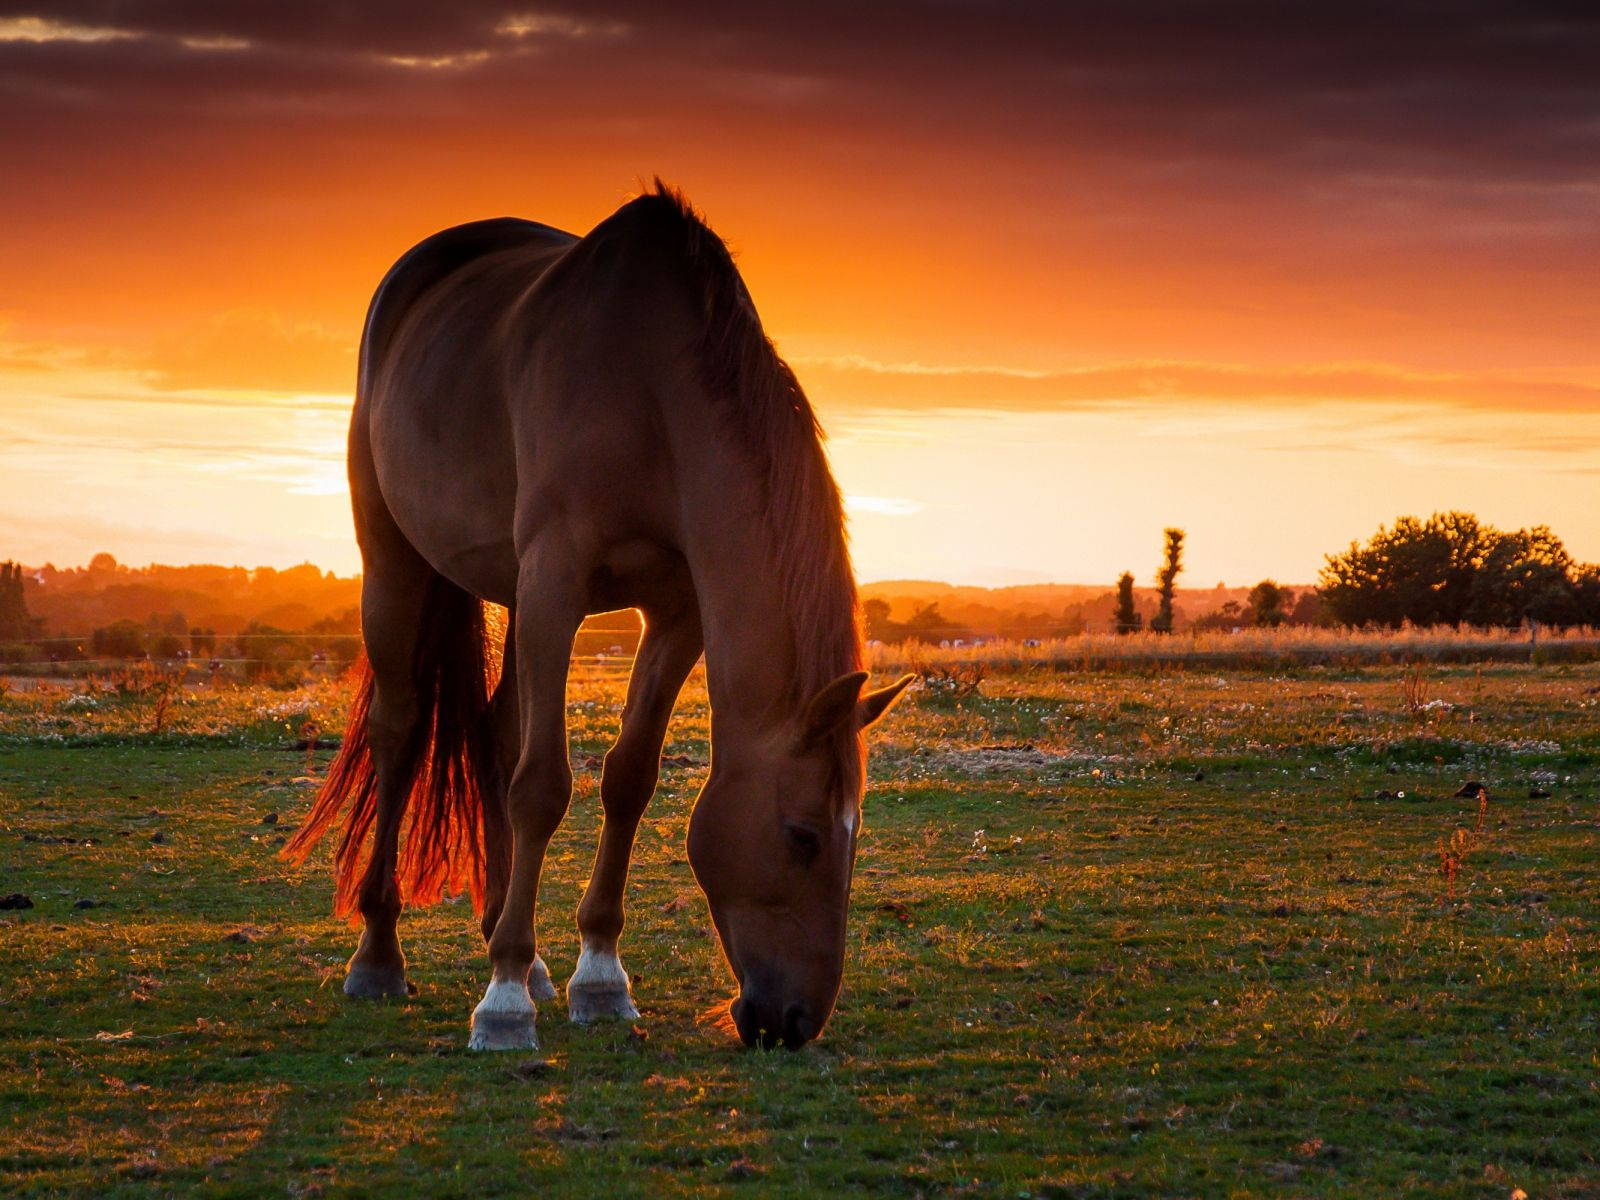 Must see Wallpaper Horse Landscape - 9d0a6106114d8fb246d798bb22983a5a  You Should Have_366320.jpg